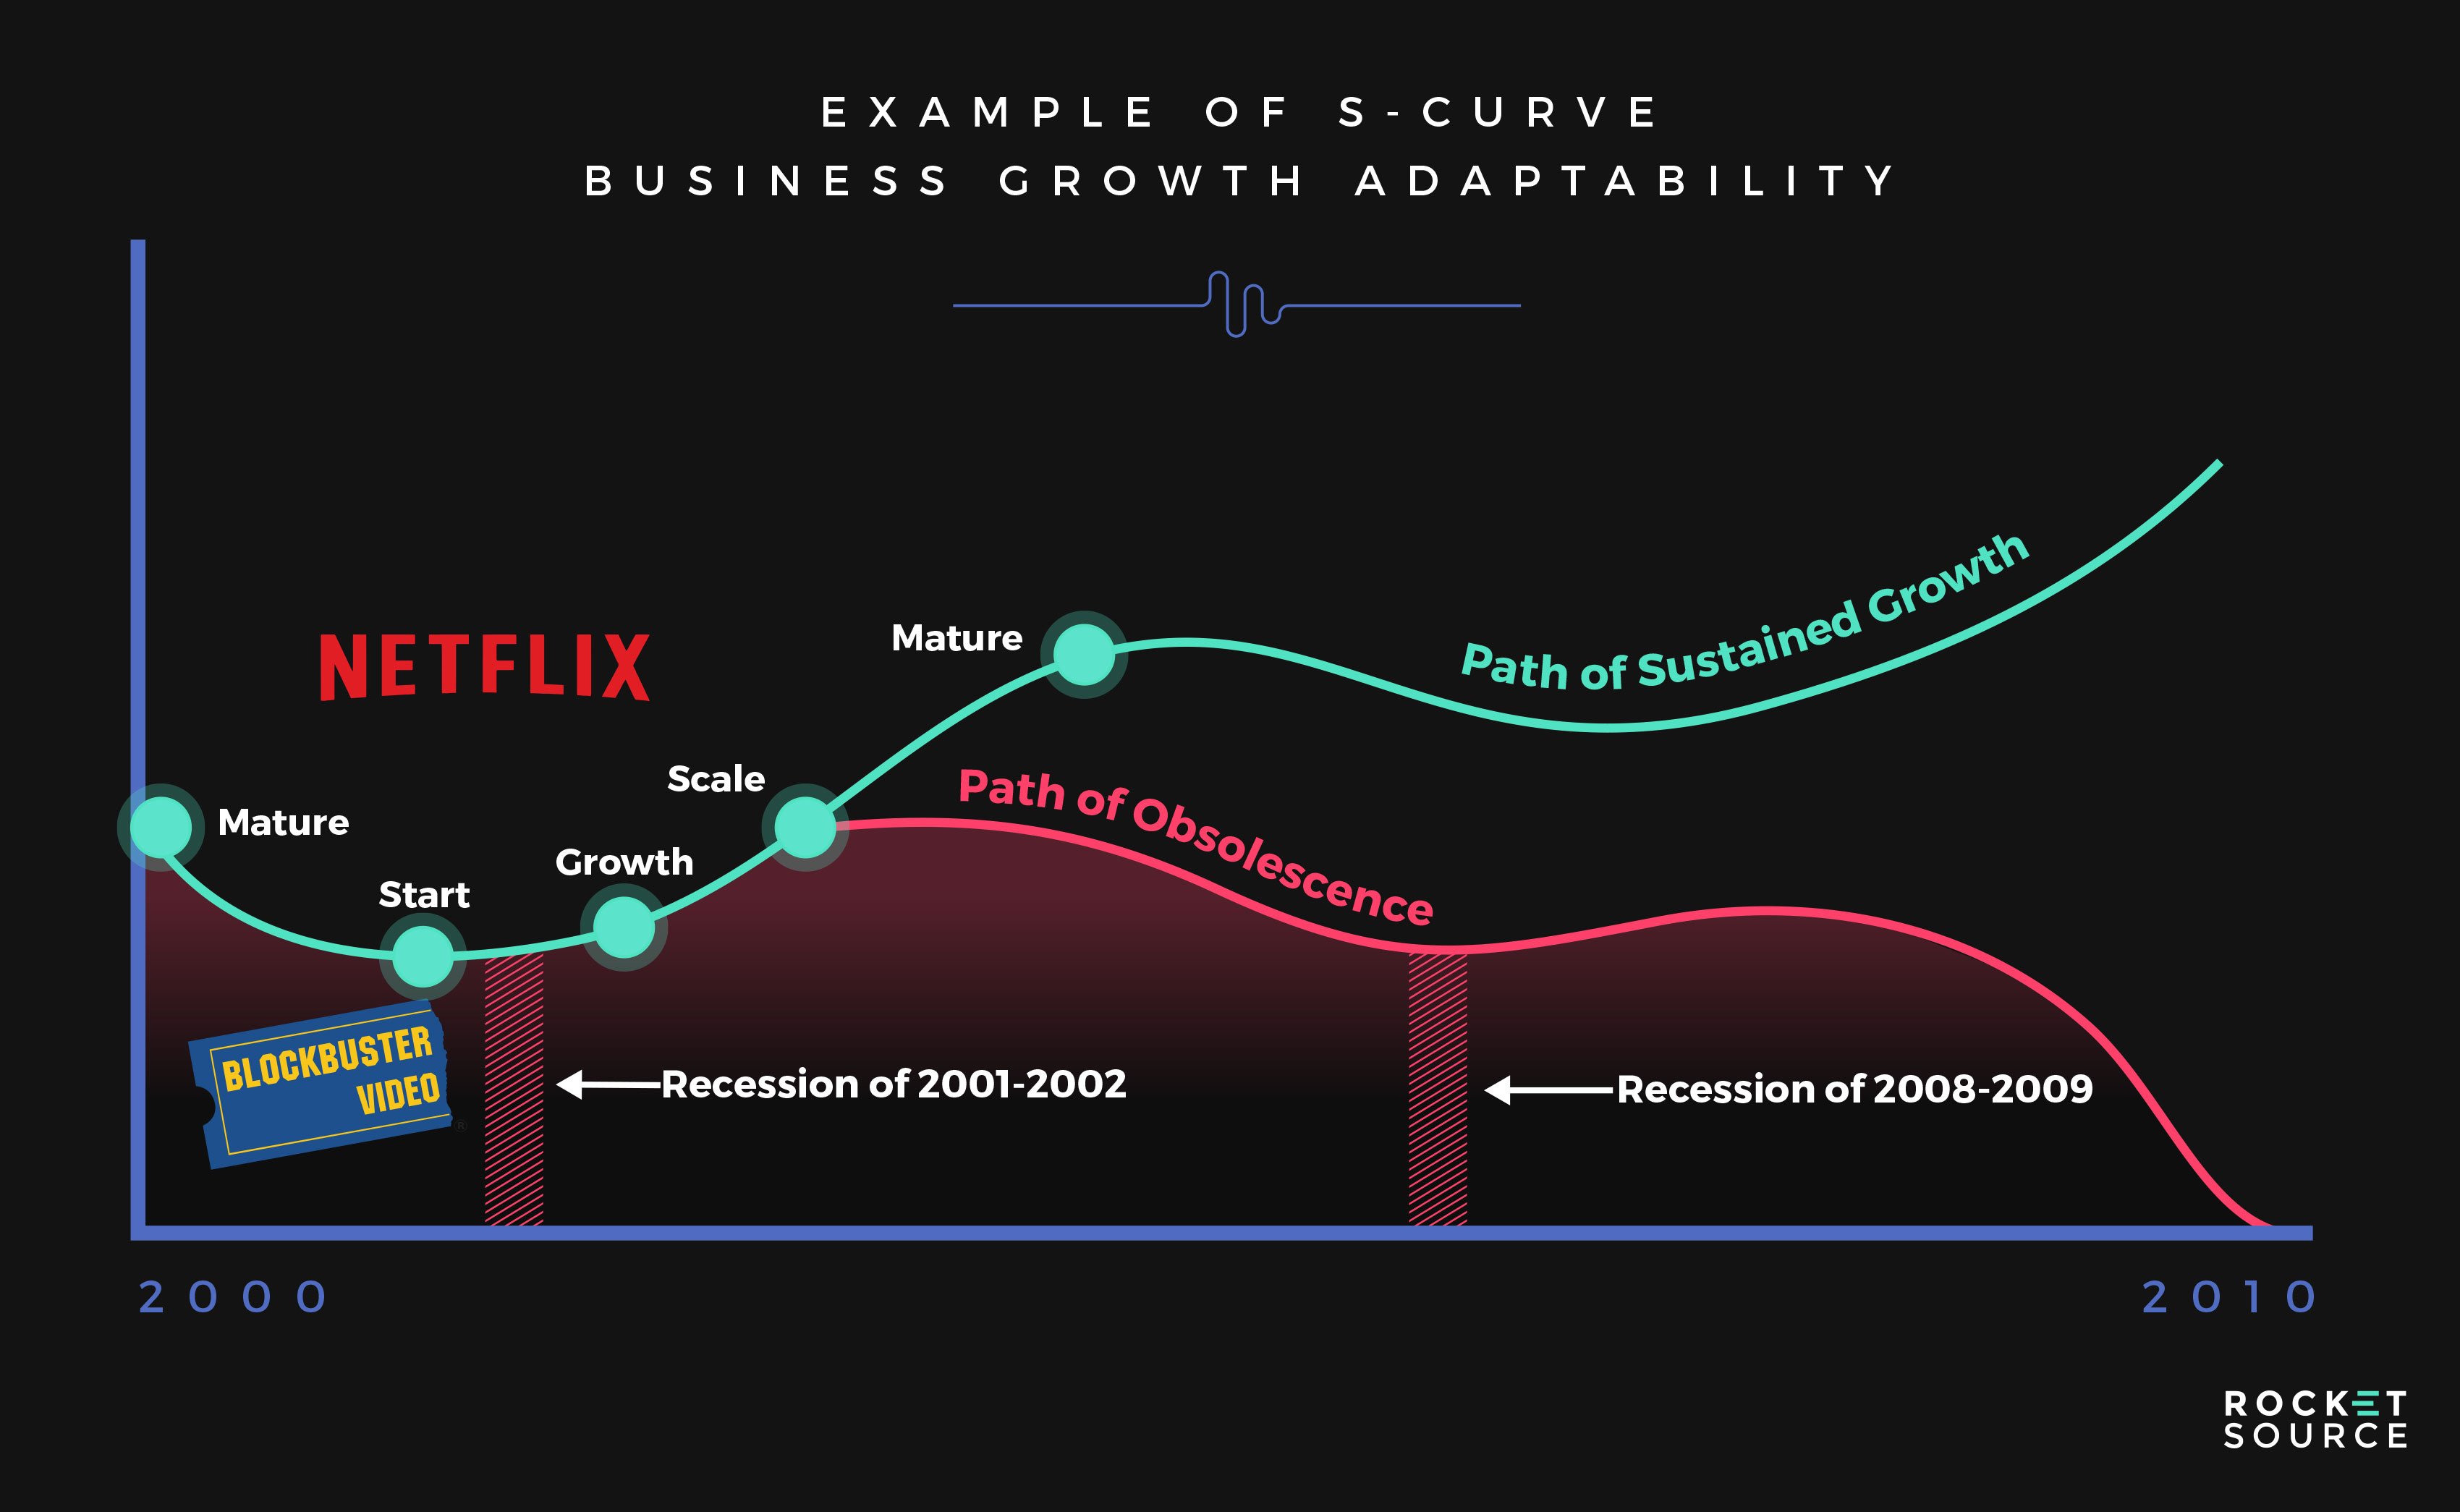 S Curve of Business Adaptability